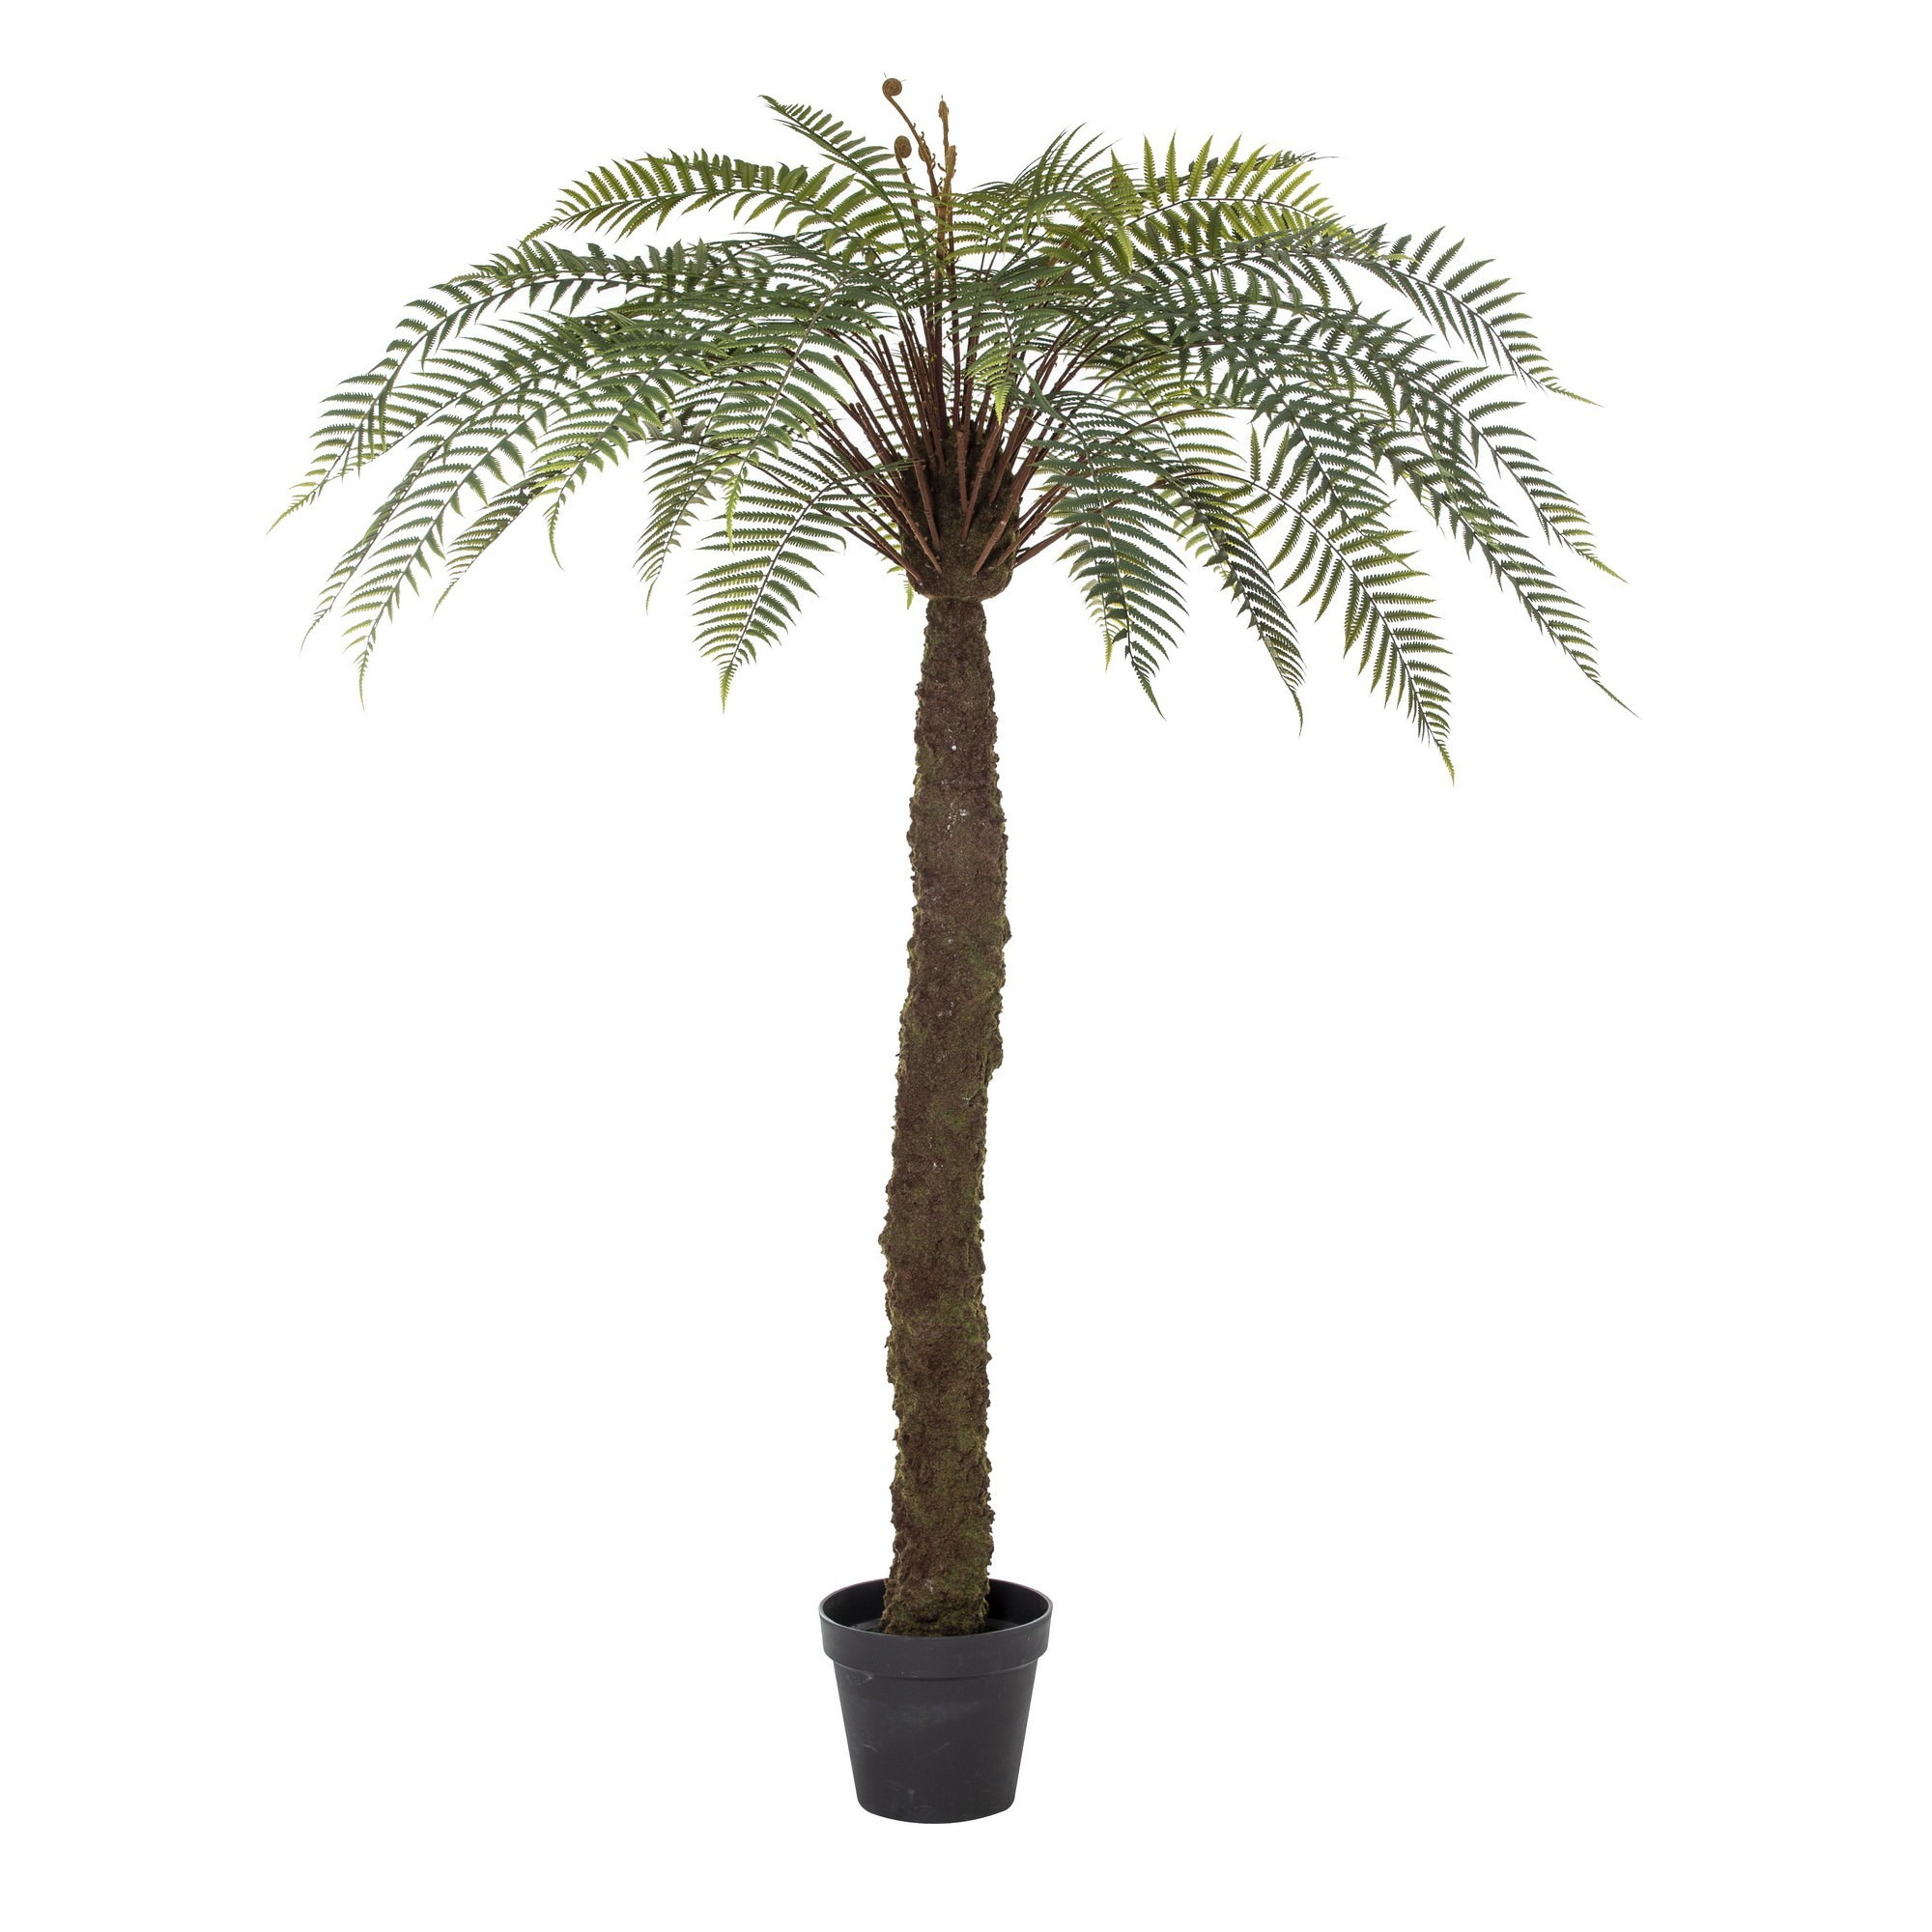 Potted Artificial Sword Fern, 183cm